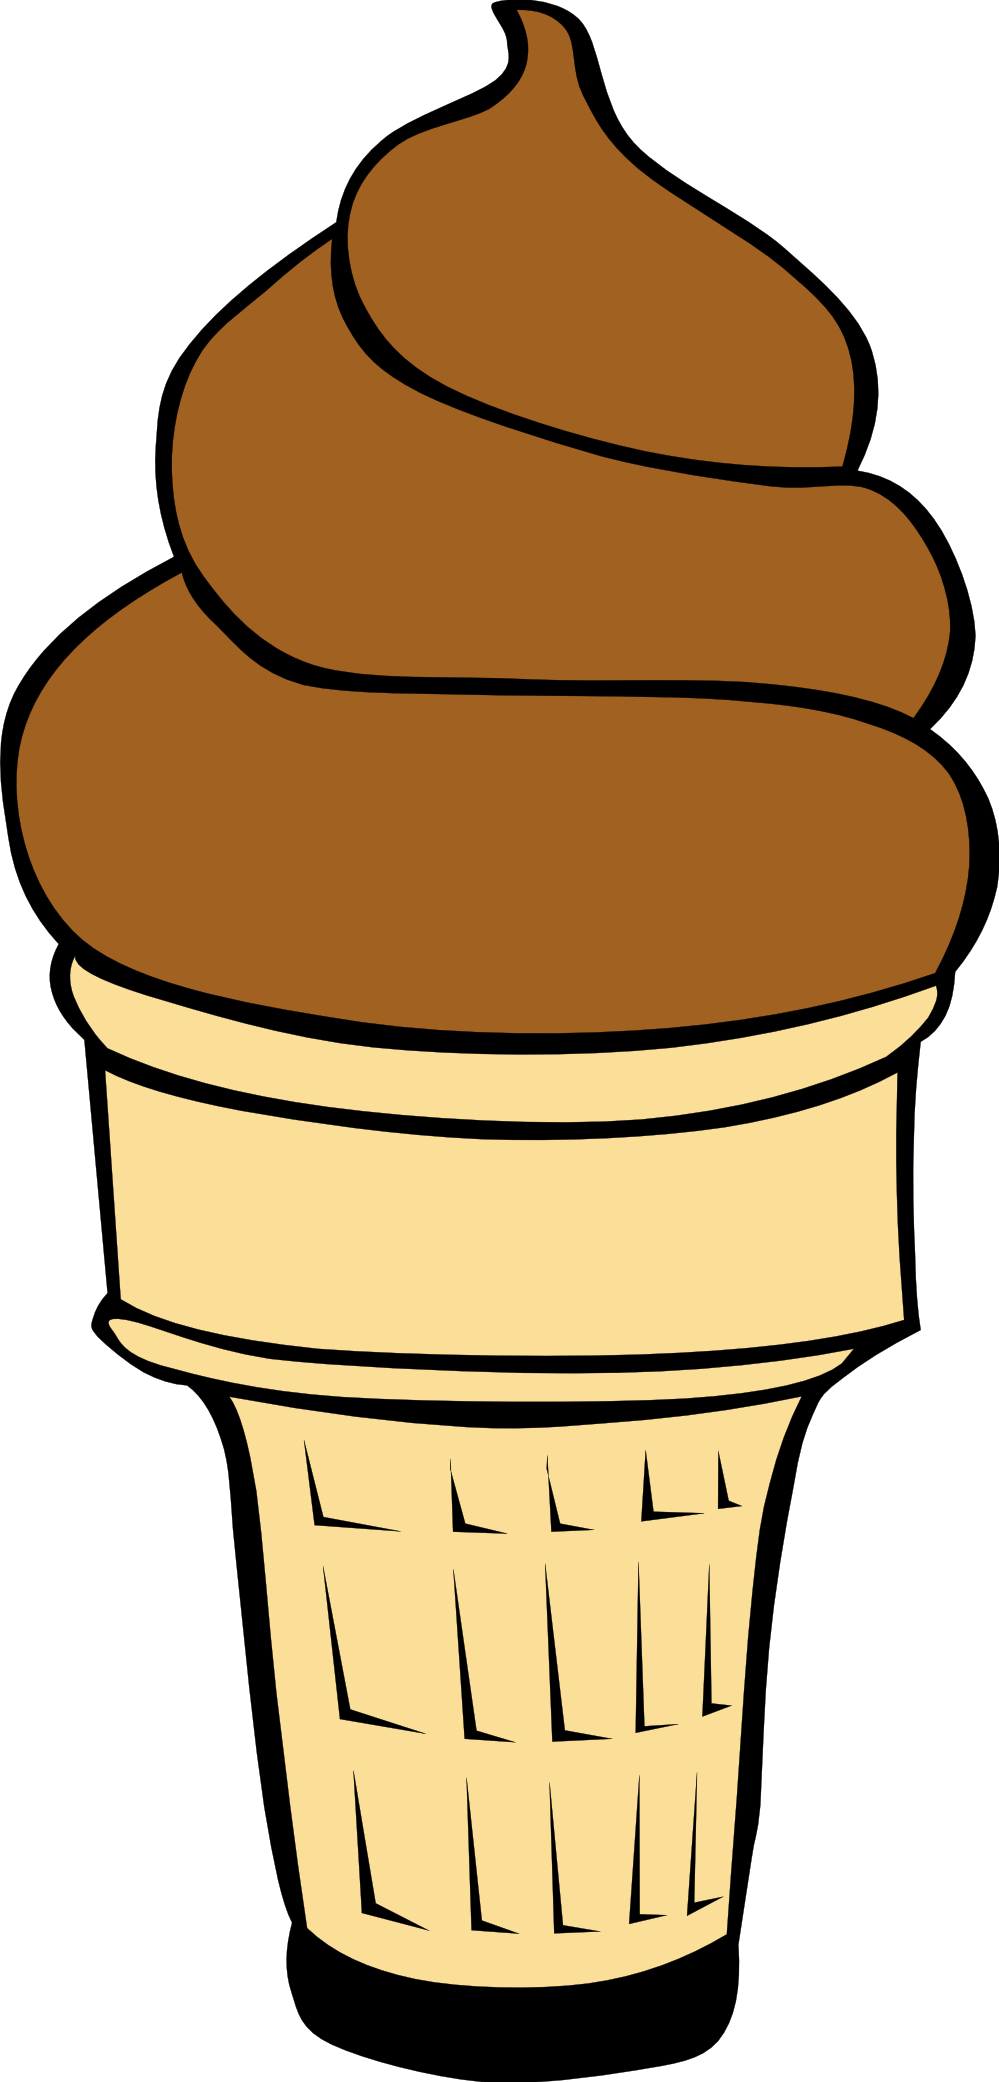 ice cream scoop clipart png